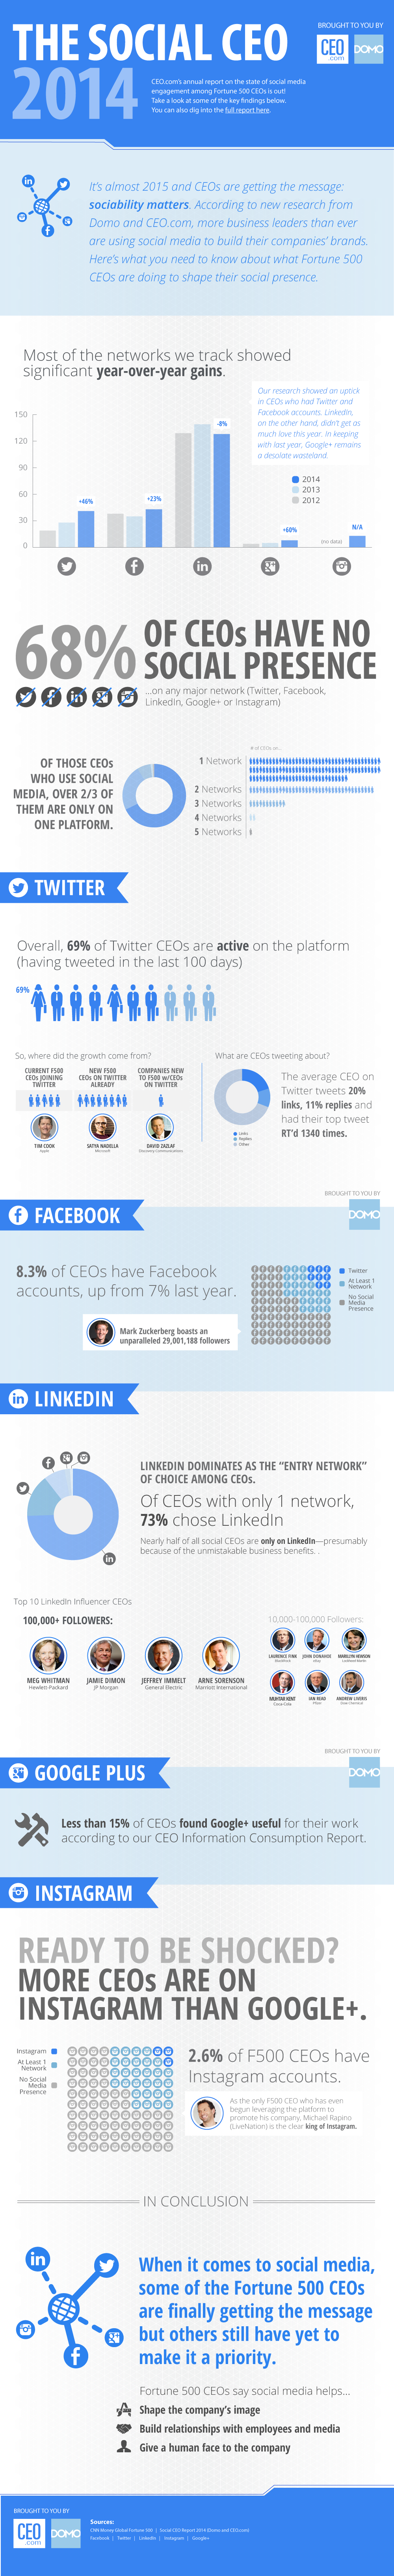 CEOs' Use Of Social Media [INFOGRAPHIC]